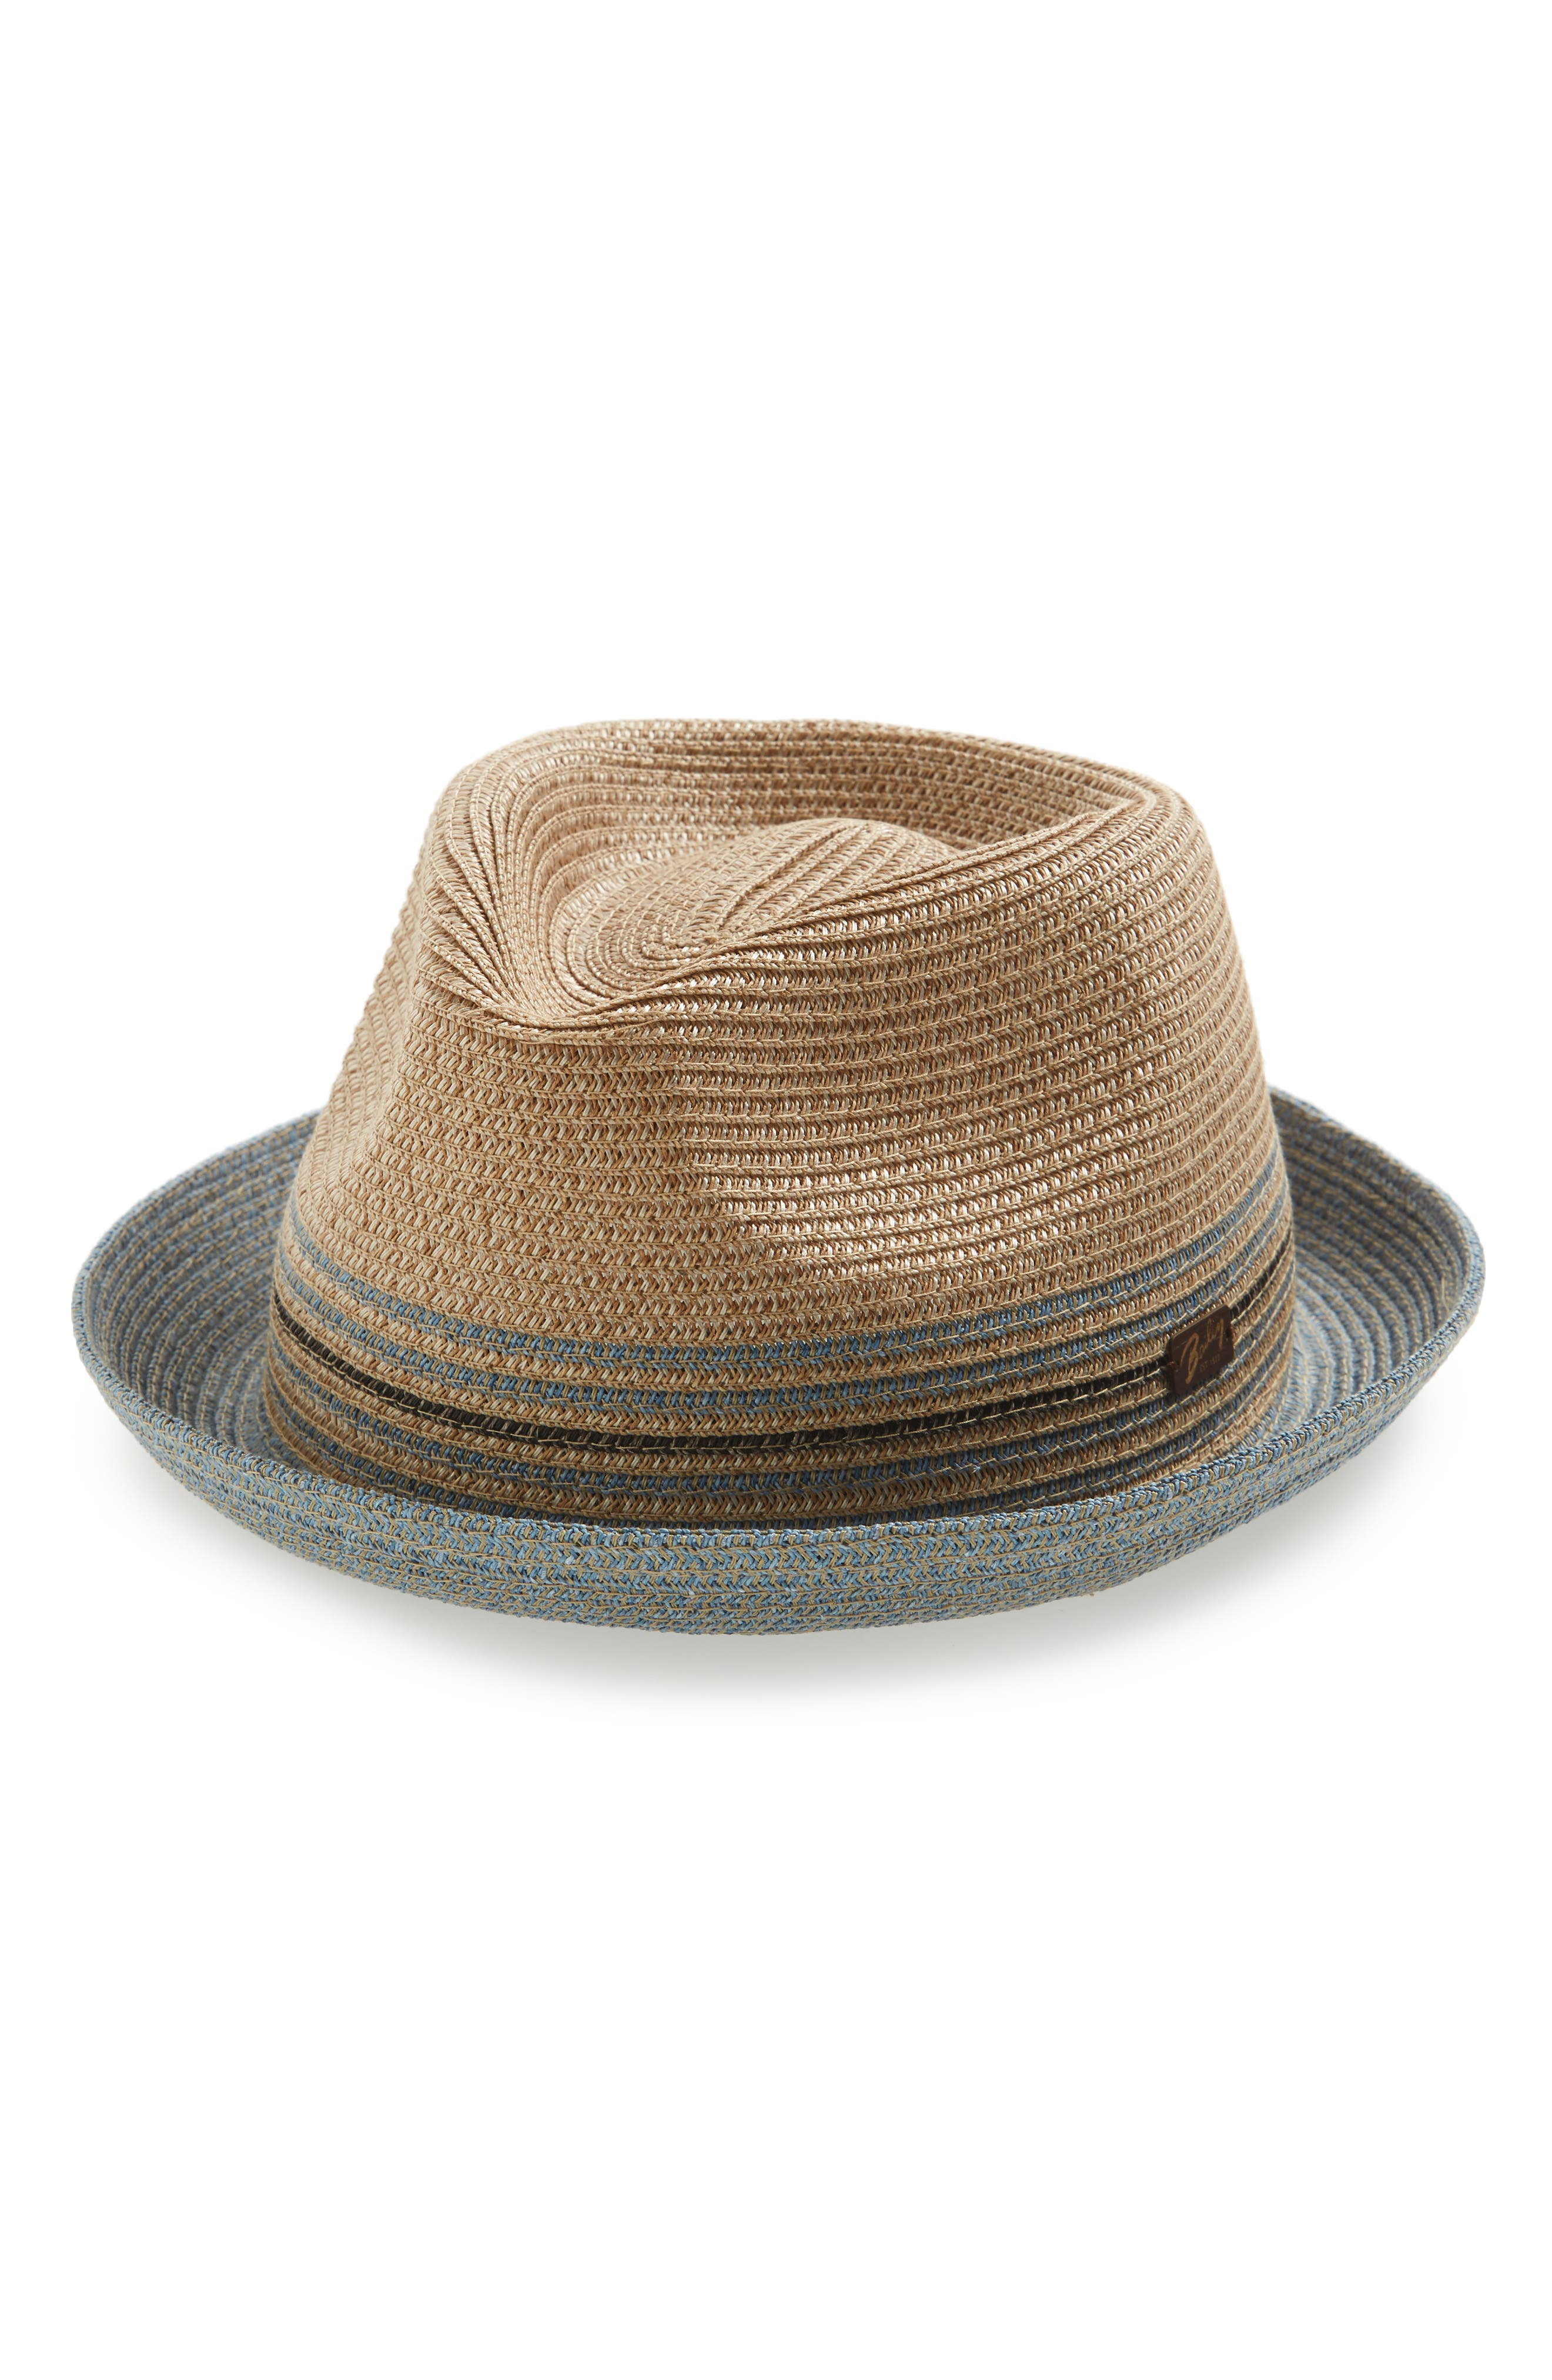 Alternate Image 1 Selected - Bailey Hooper Paper Straw Trilby